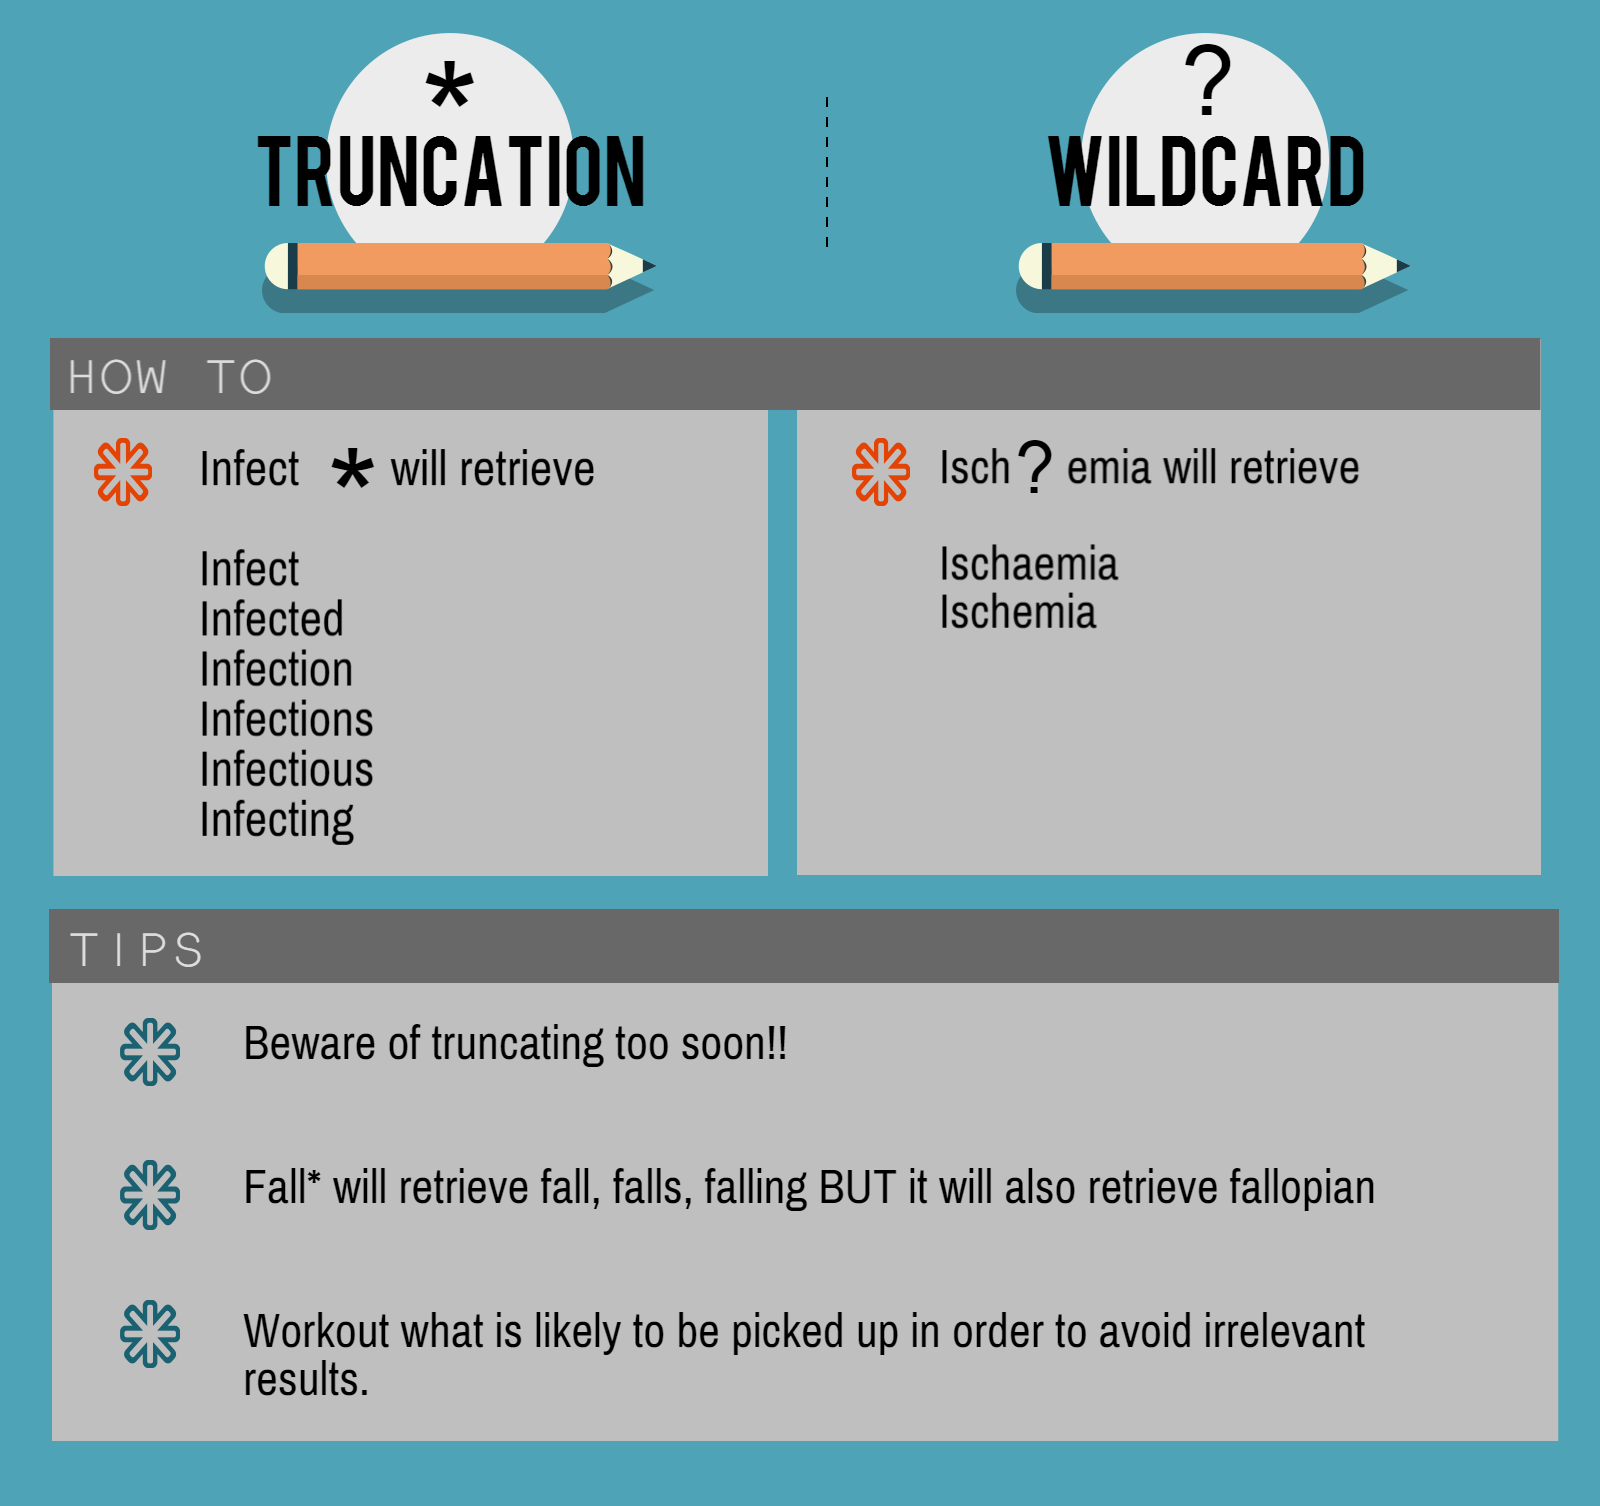 Truncation and Wildcard